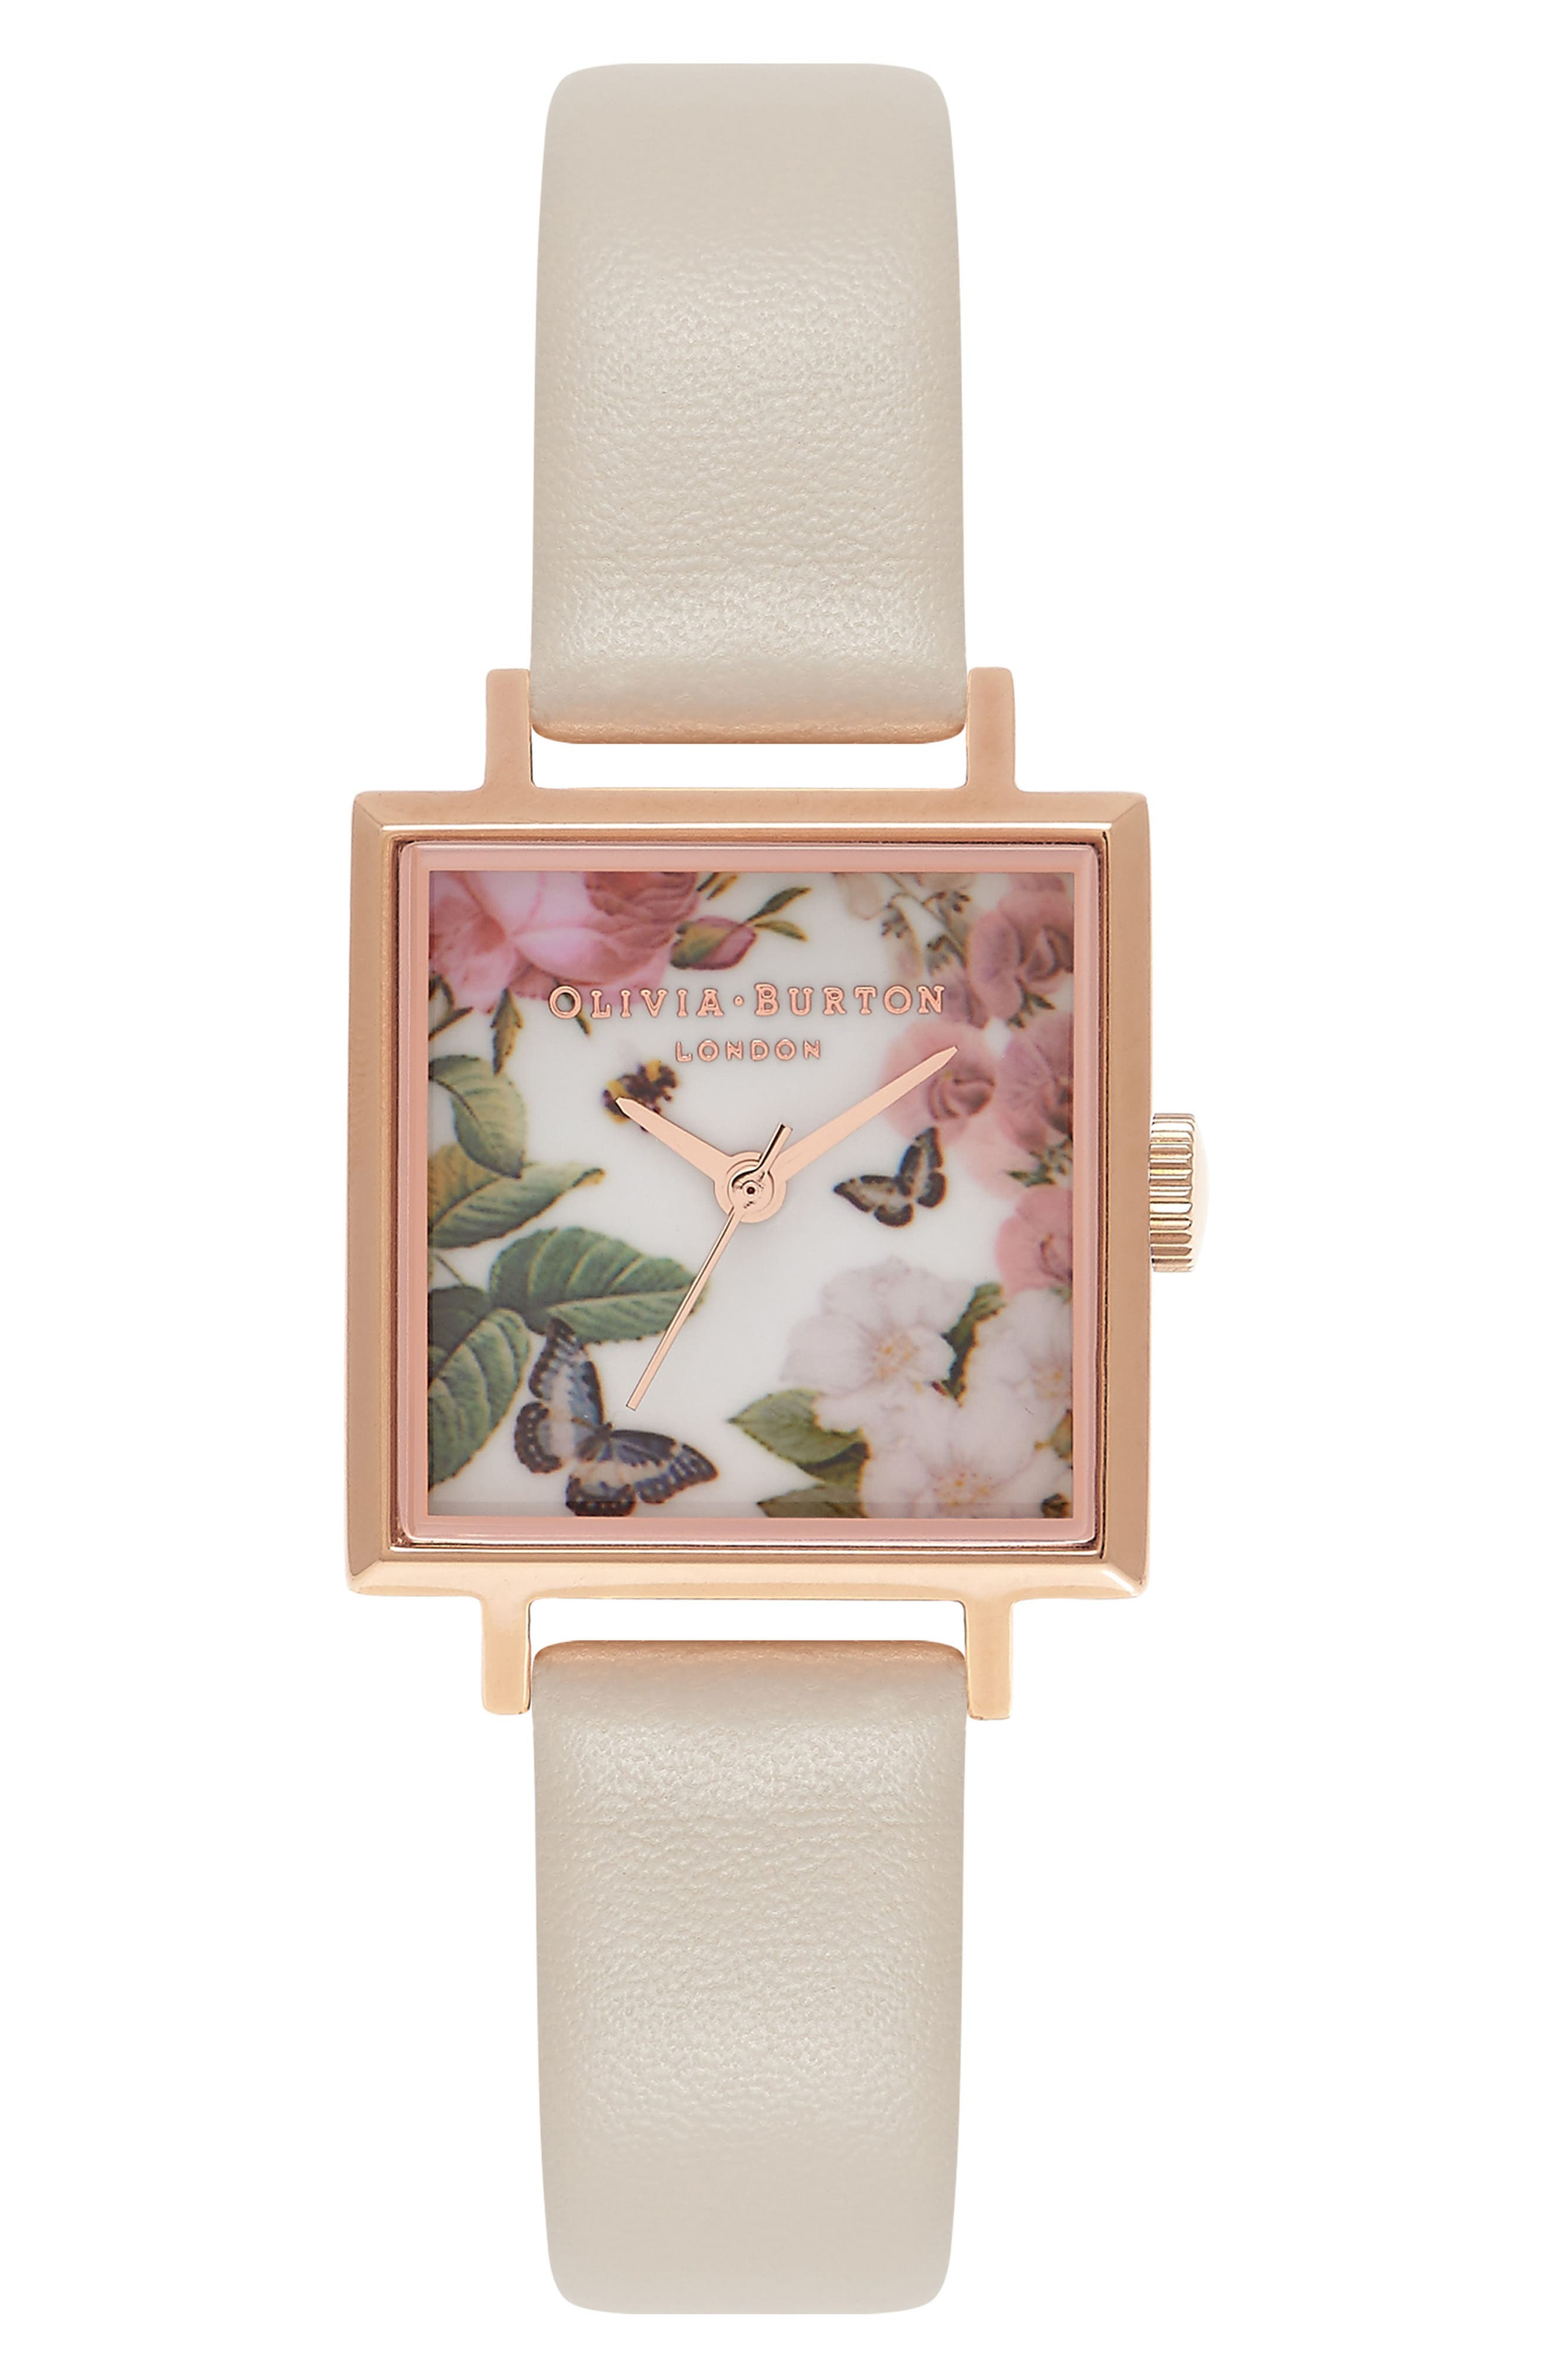 OLIVIA BURTON Enchanted Garden Midi Square Faux Leather Strap Watch, 23mm